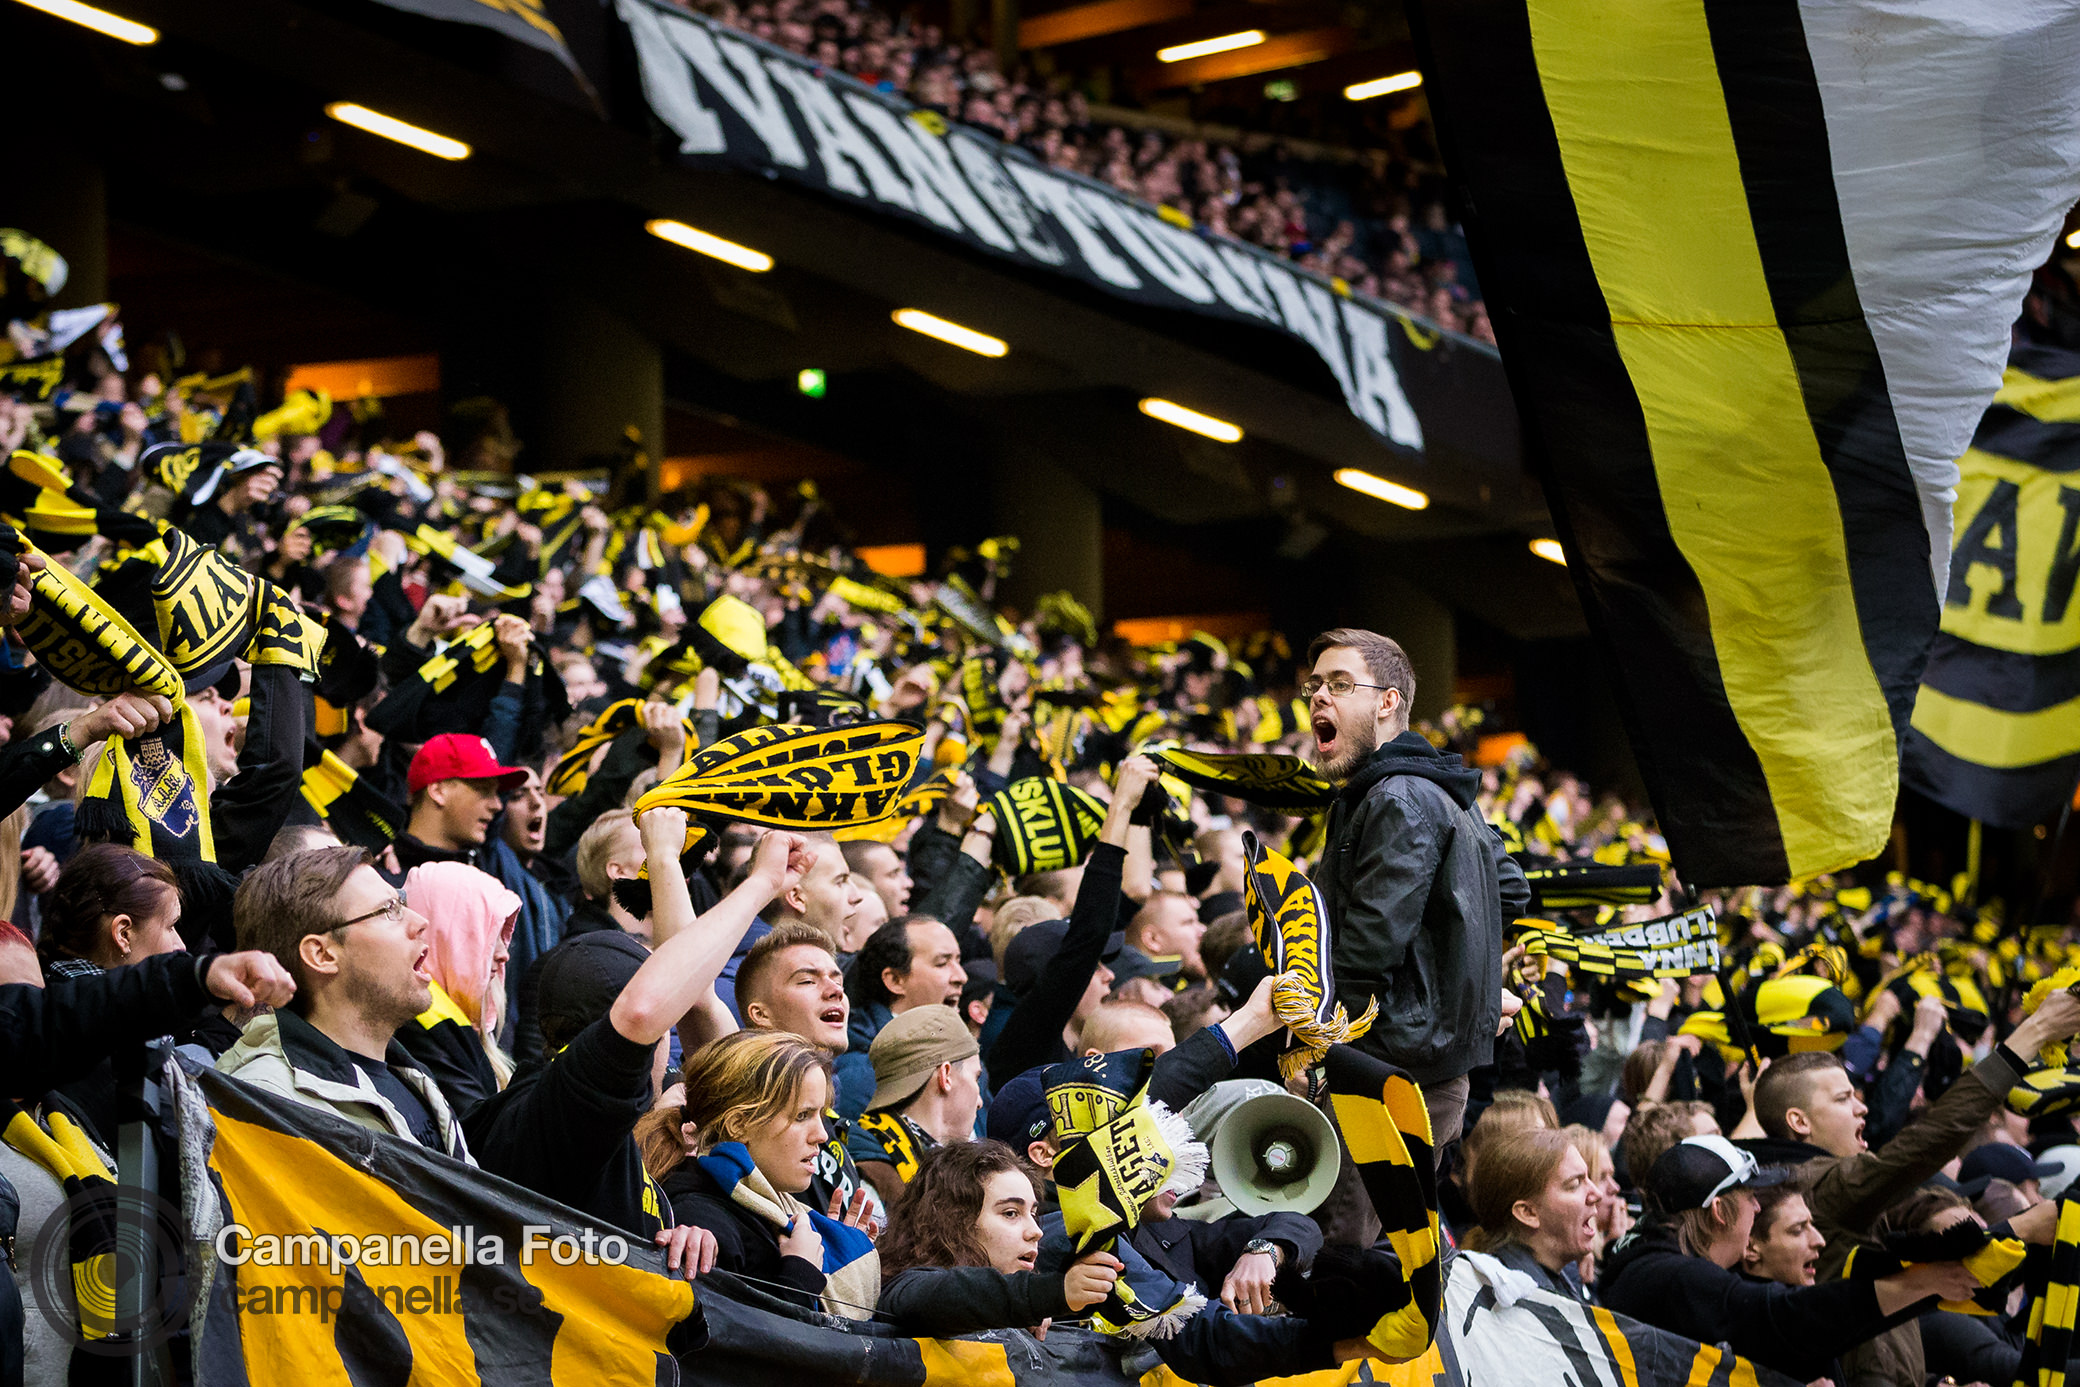 AIK draws home premiere - Michael Campanella Photography